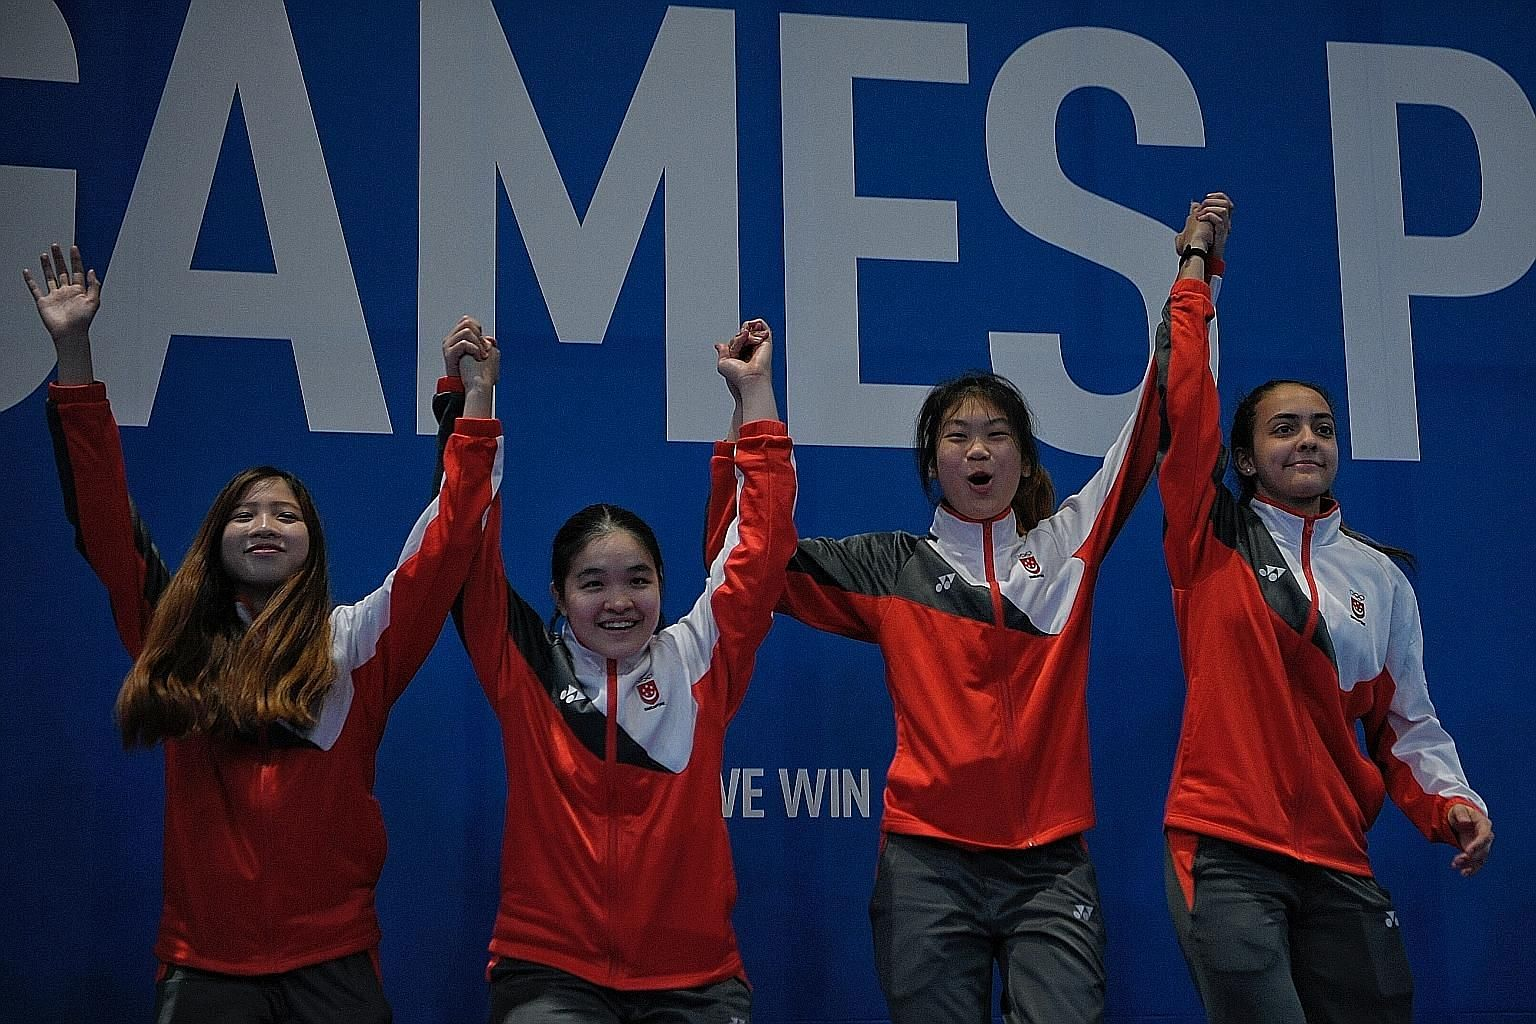 The victorious Singapore team of (from left) Tatiana Wong, Maxine Wong, Denyse Chan and Amita Berthier on the top step of the podium, after coming from behind to beat Vietnam in the SEA Games women's foil team final at the World Trade Centre in Manil